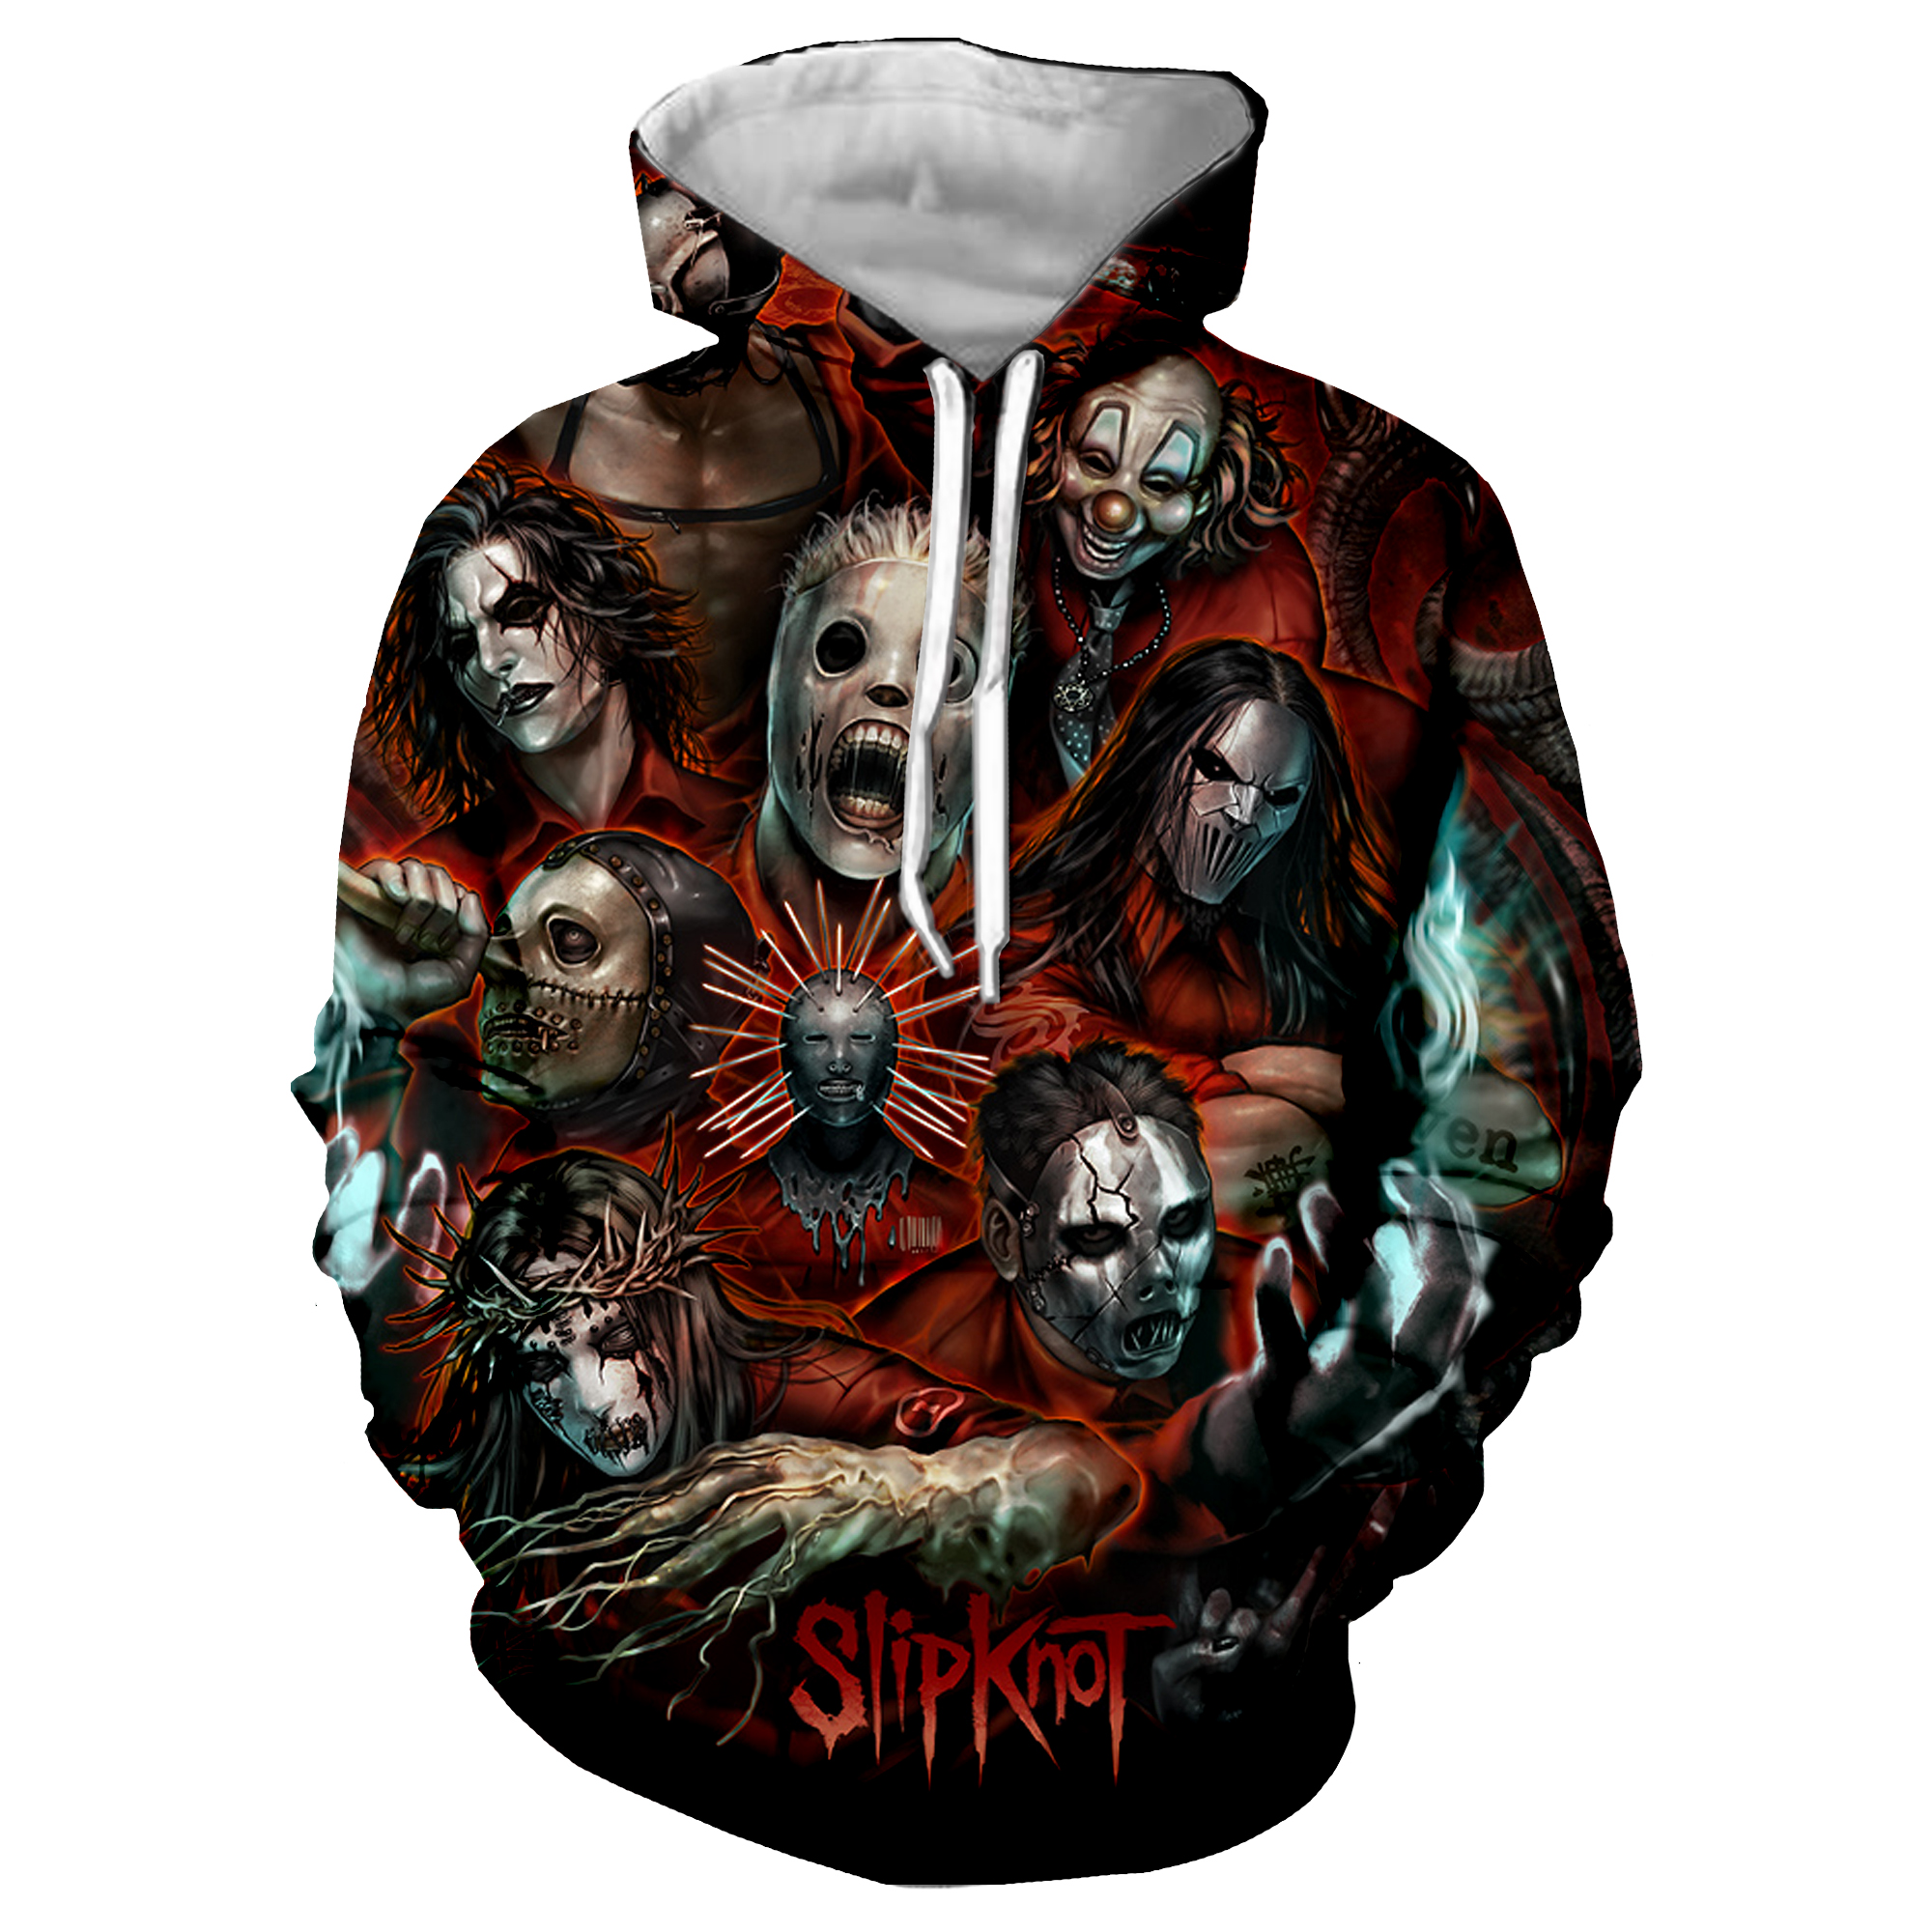 Slipknot 3D Print Cool Rock Jacket Men/women Hip Hop Sweatshirt Hoodies Unisex Autumn Streetwear Hoodies Men Clothes 2019 5XL